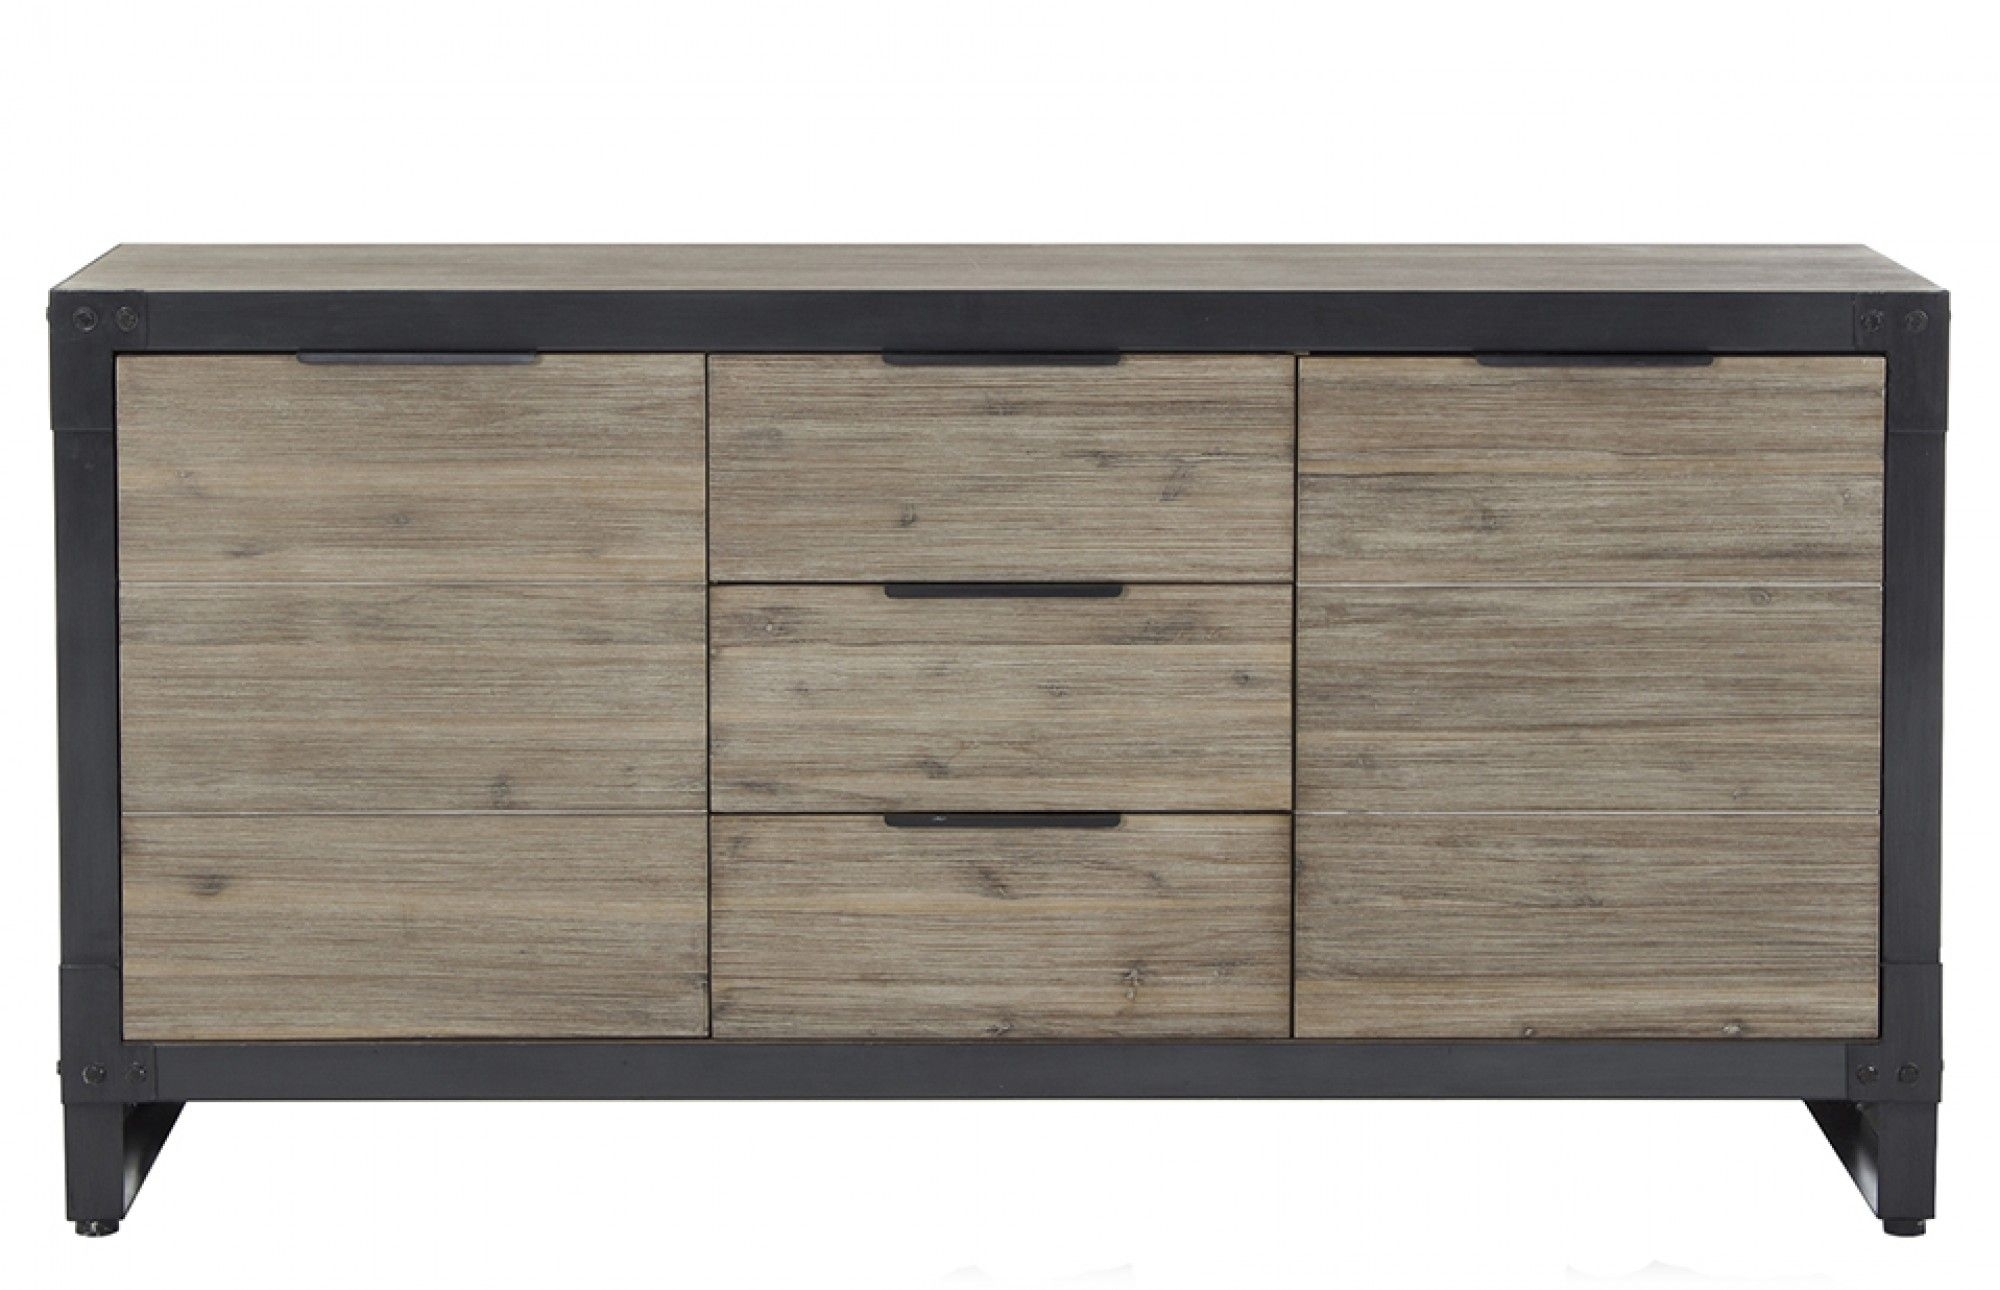 Brunel - Sideboard | Pinterest | Drawers, Hardware And Industrial within Candice Ii Sideboards (Image 2 of 30)